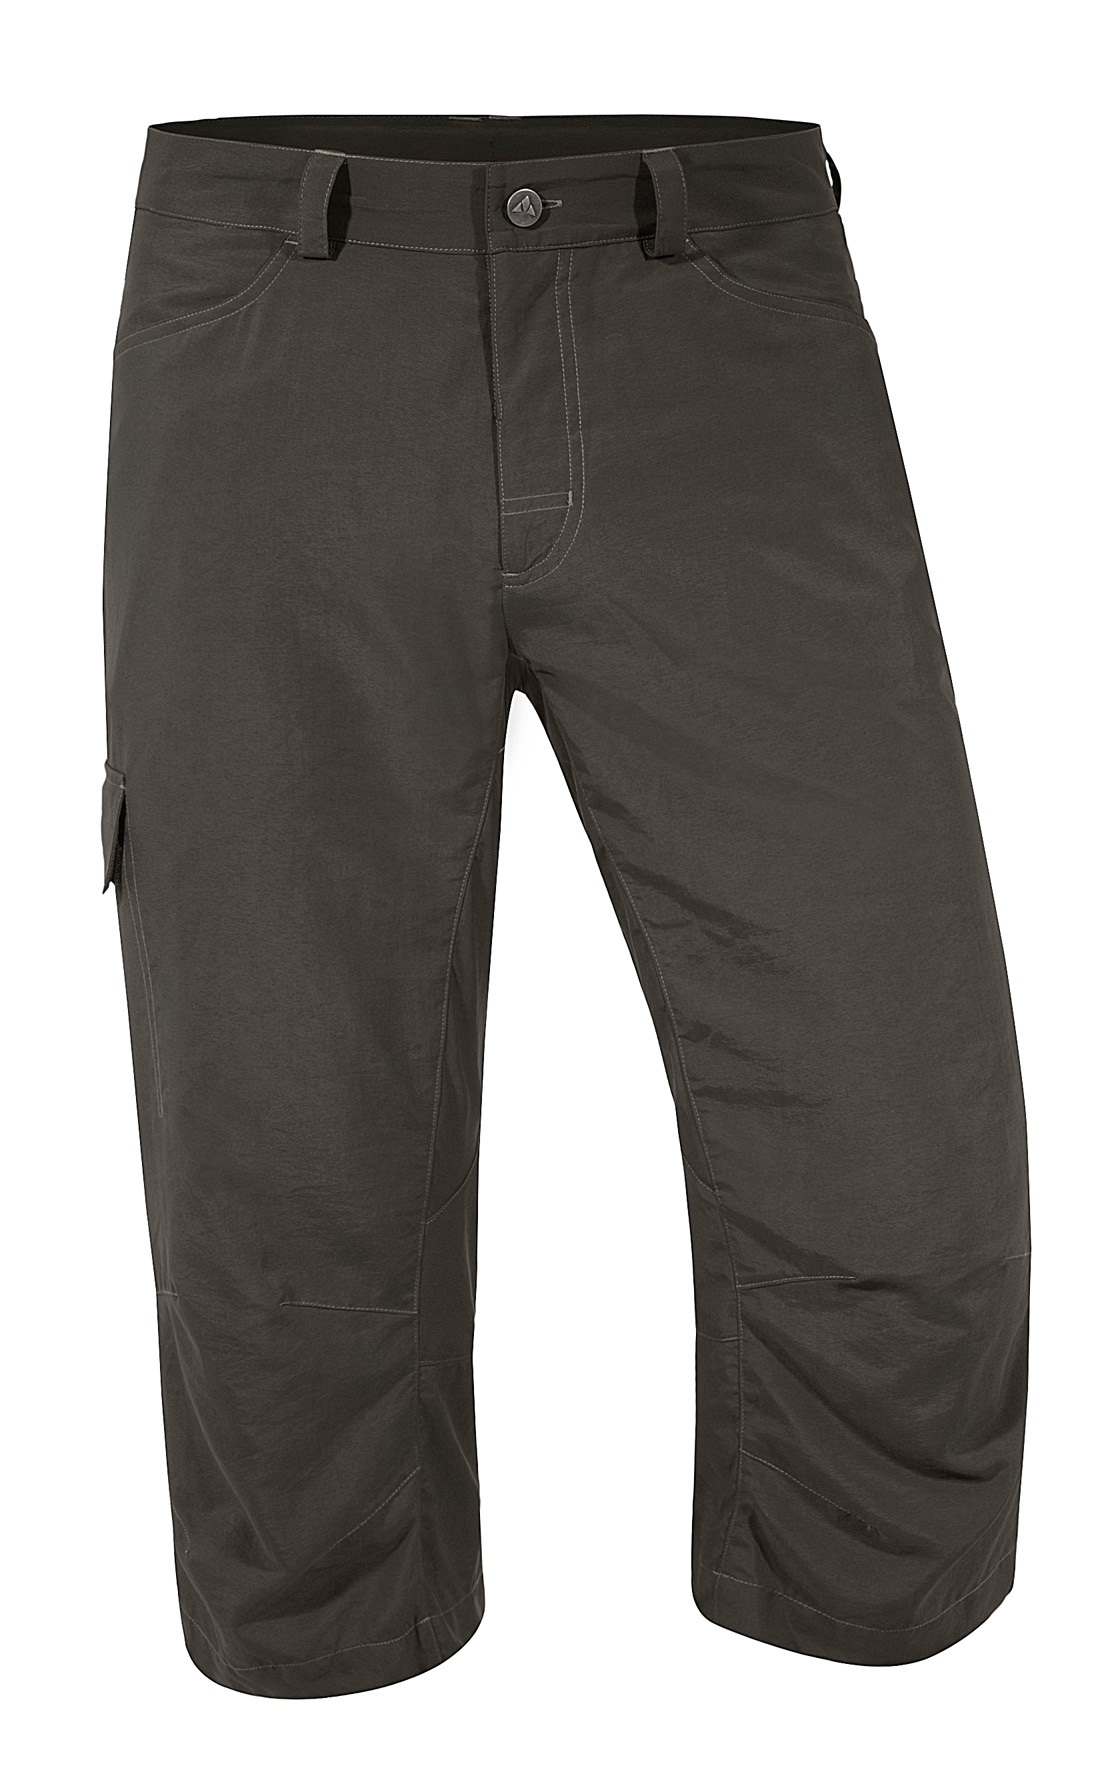 Men´s Lauca 3/4 Pants fir green Größe S - schneider-sports